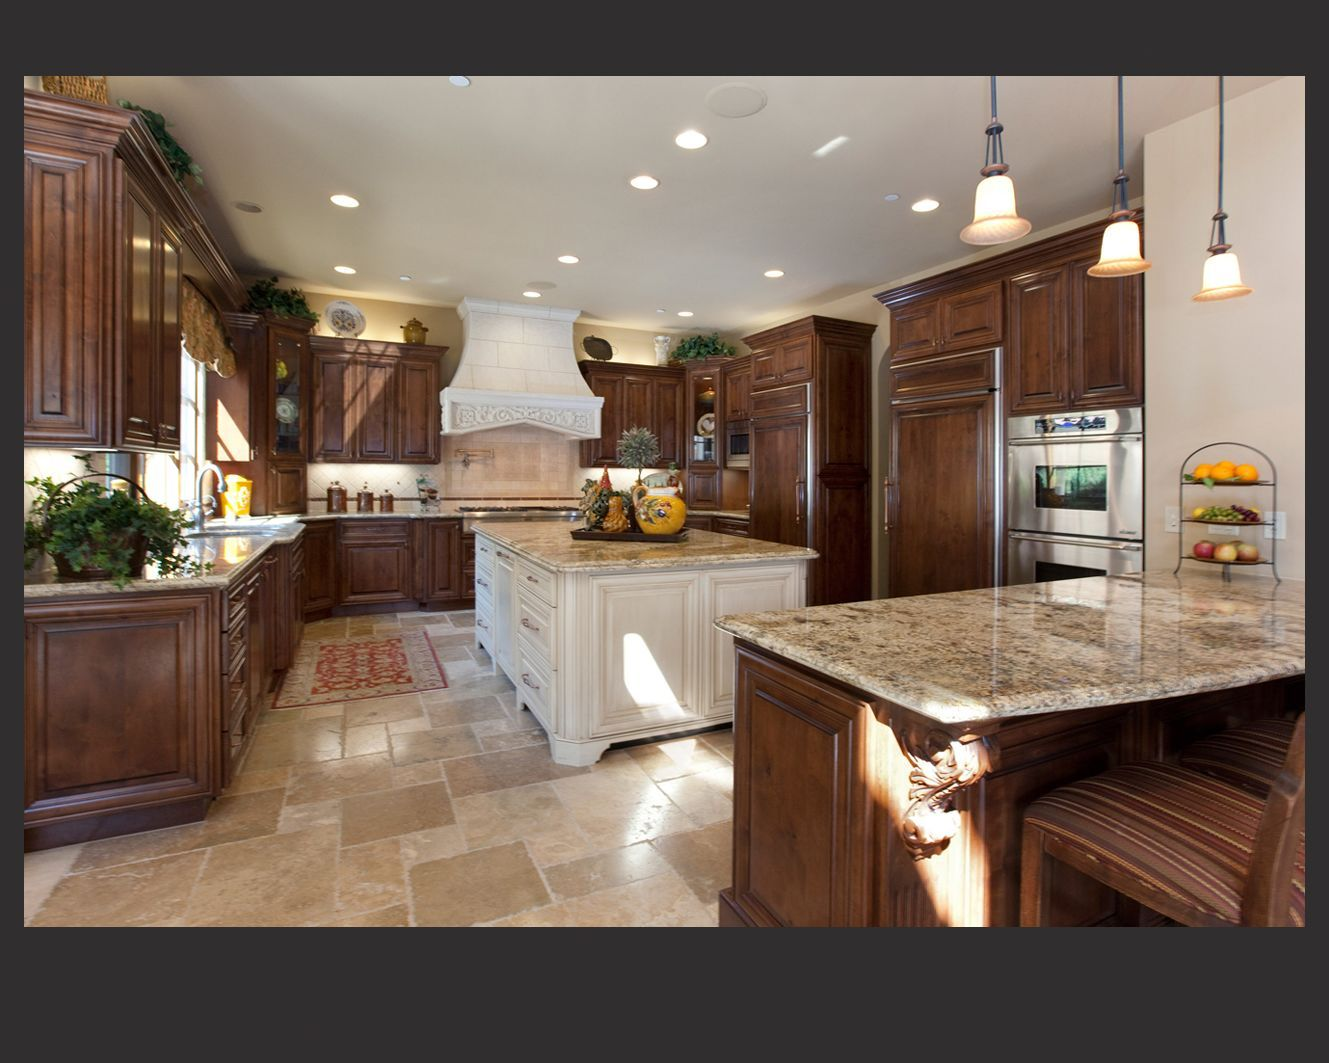 Kitchen Cabinets U Shaped With Island richly detailed u-shaped kitchen centers dark wood cabinetry